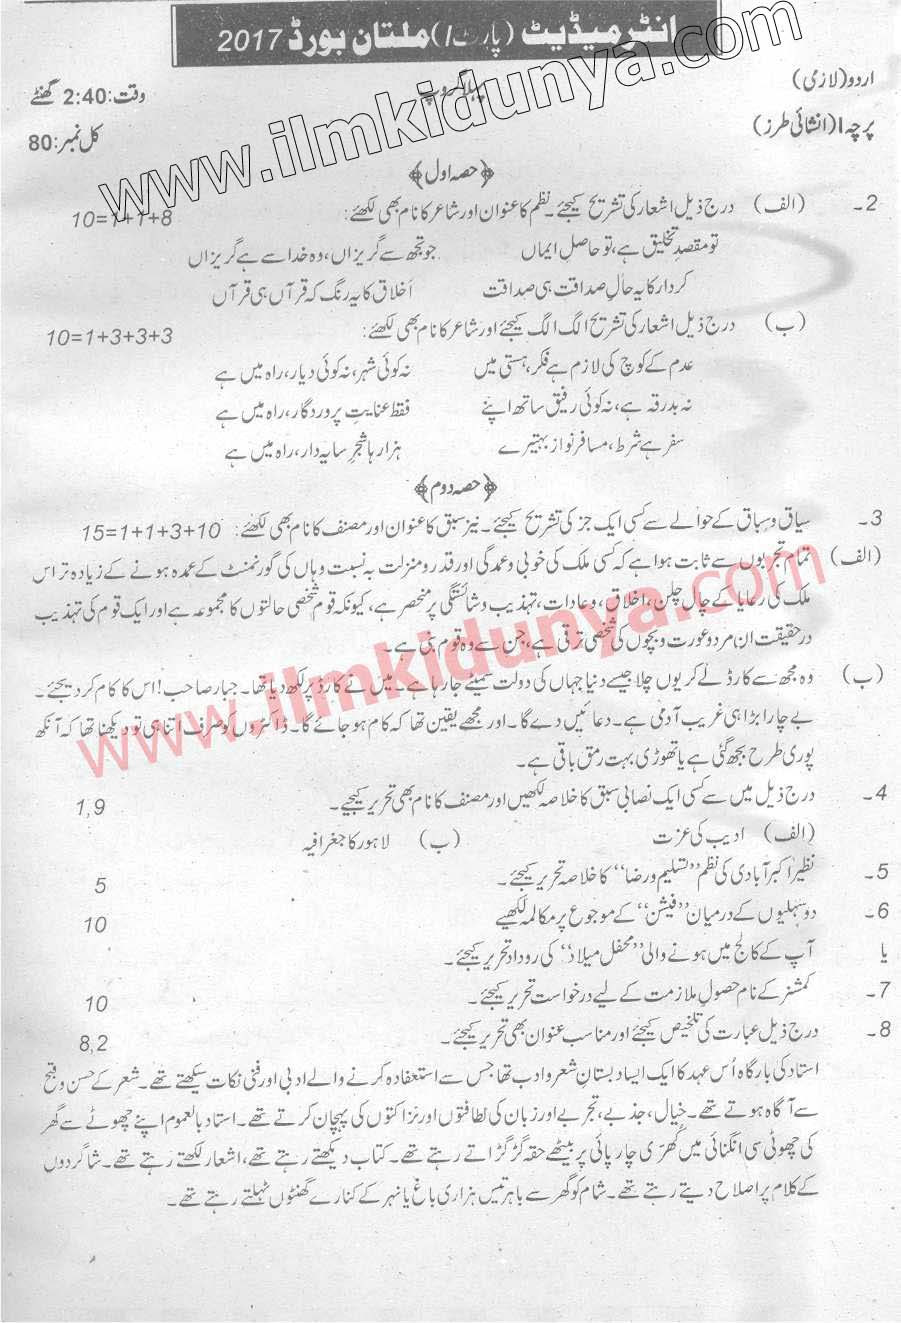 past papers intermediate multan board Board of intermediate and secondary education (bise) multan is considered to be the largest educational board of the country for conducting exams for thousands of students every year past papers are of great importance for students as they are a good practicing example to solve papers in an effective way.